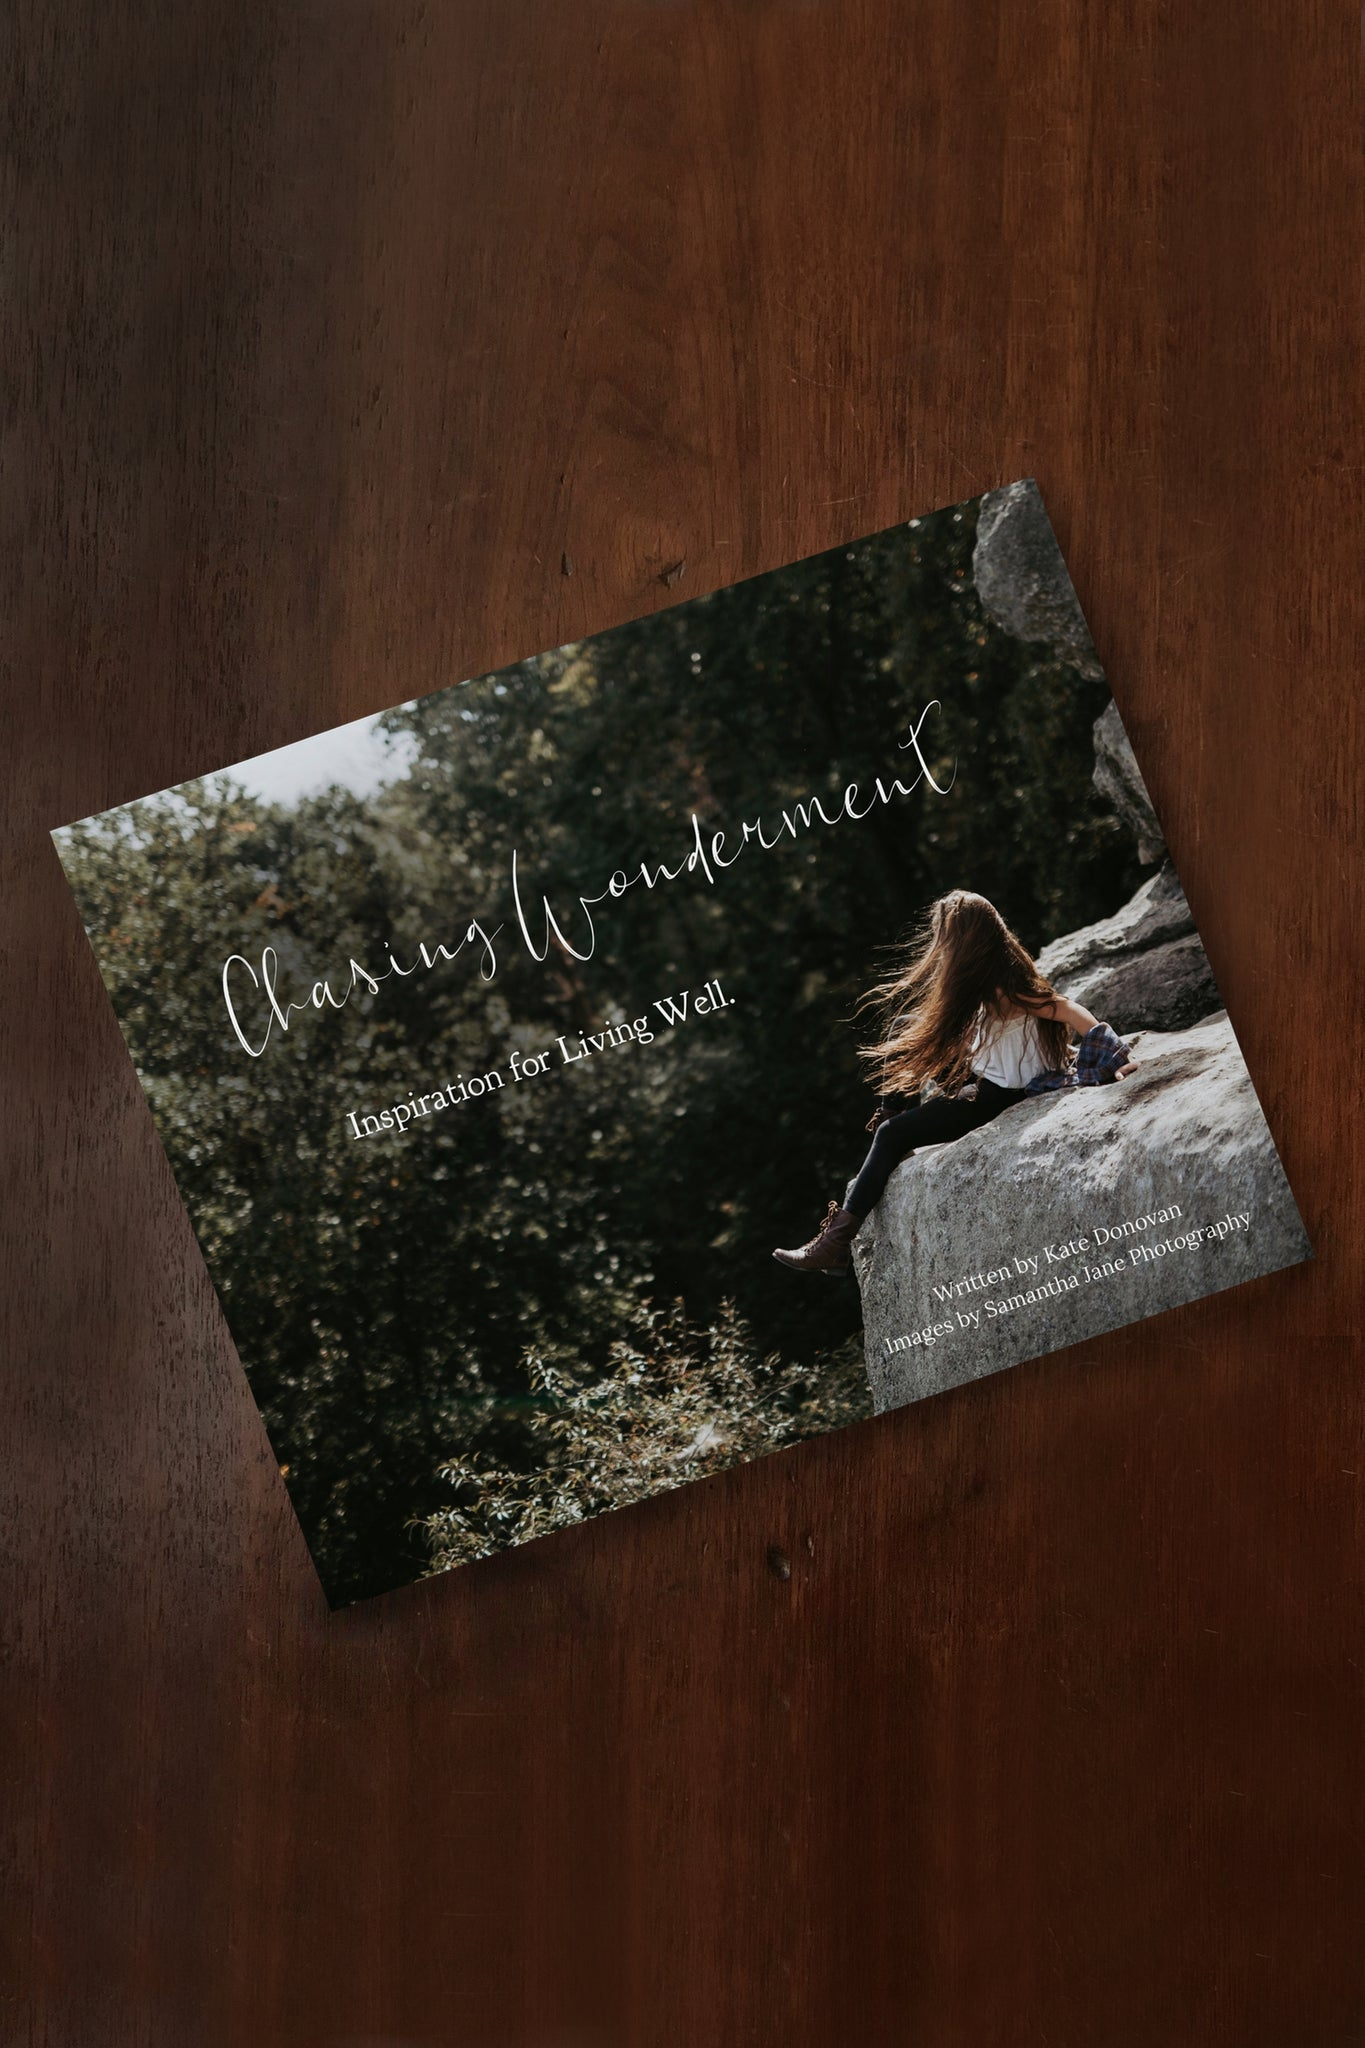 Chasing Wonderment - Inspirational Photo Book